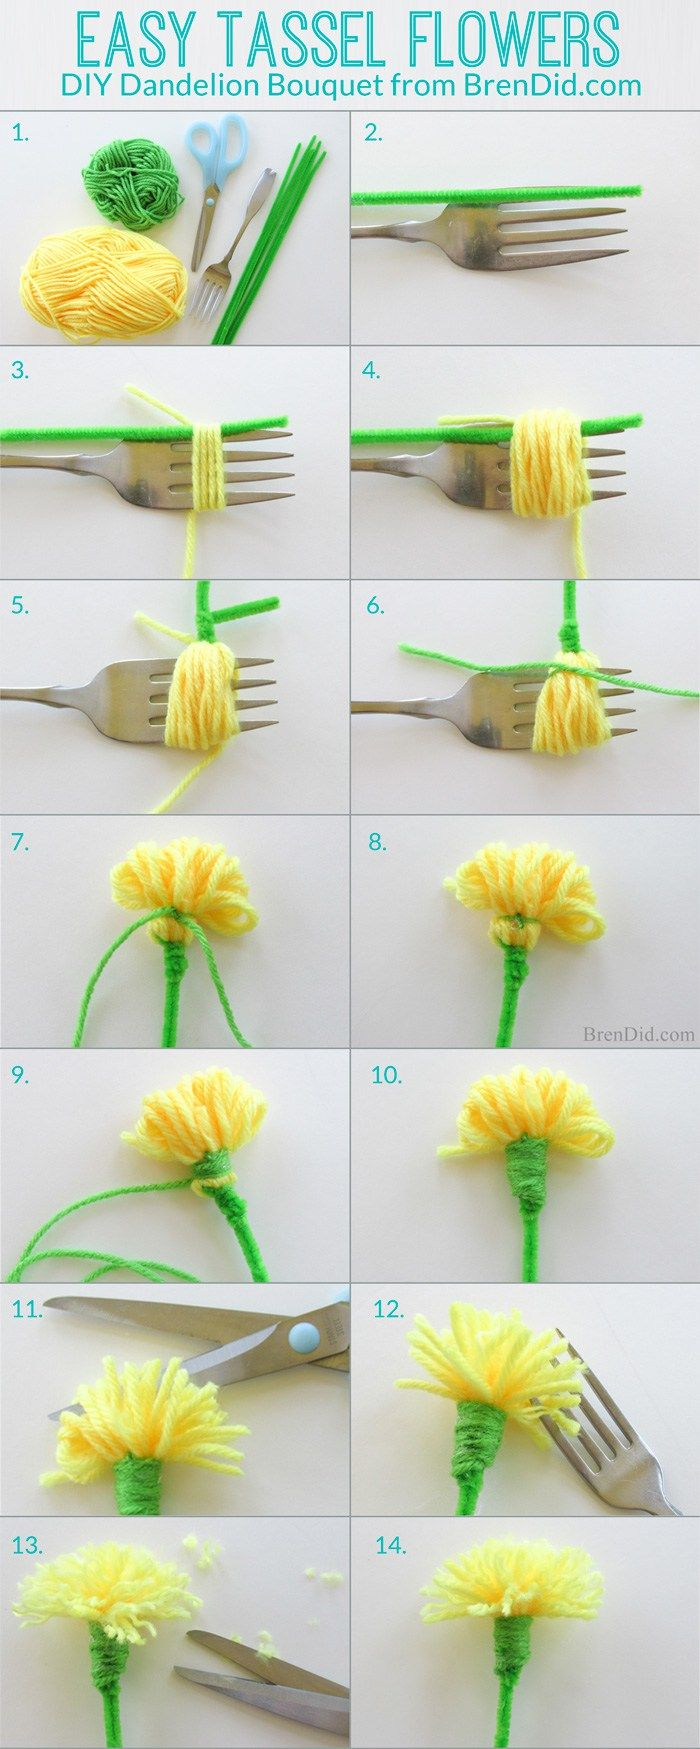 How to make tassel flowers - Make an easy DIY dandelion bouquest with yarn and pipe cleaners to delight someone you love. Perfect for weddings, parties and Mother's Day. DIY Flowers